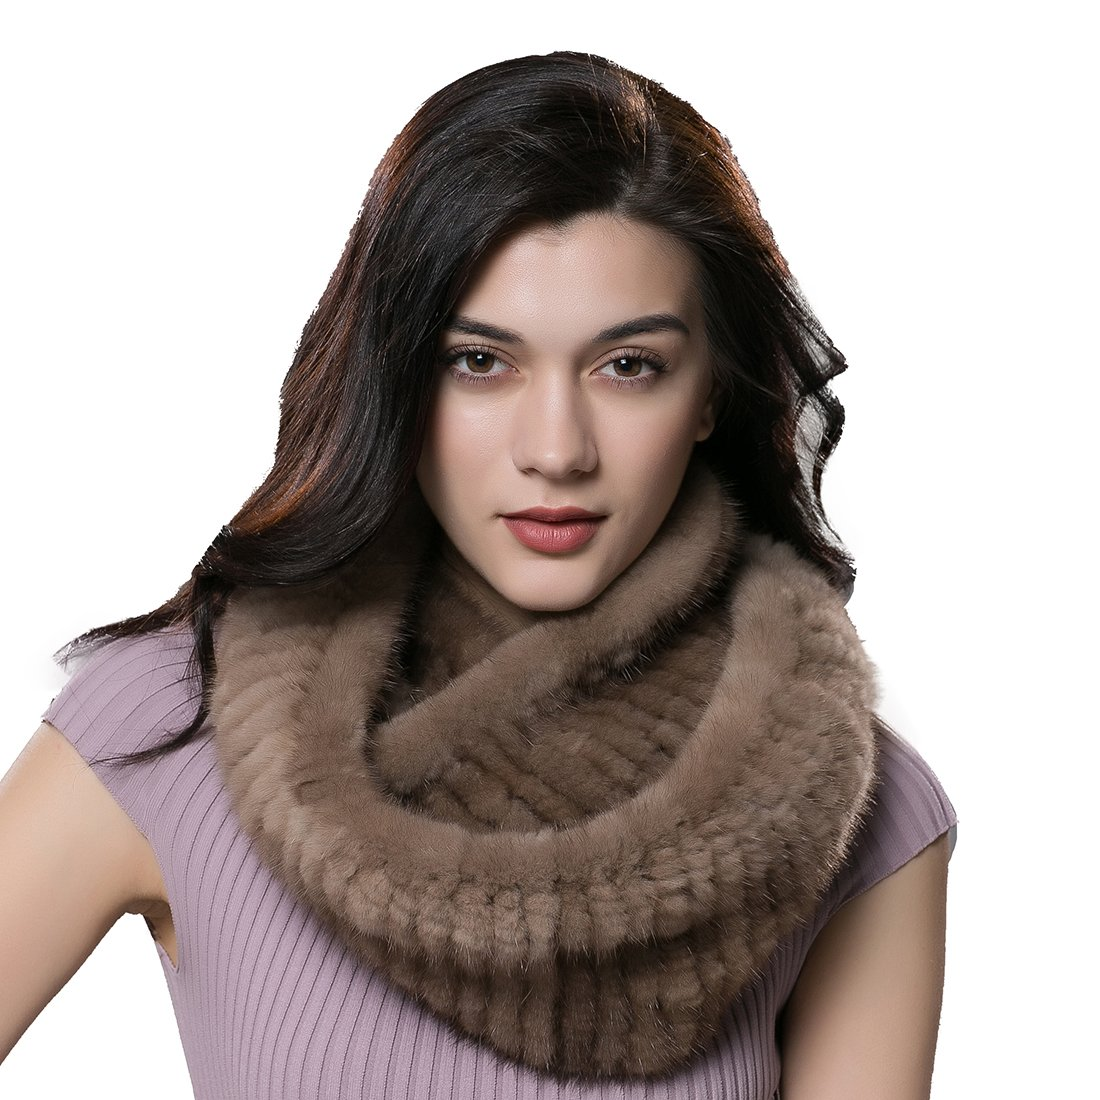 URSFUR Women Fur Knitted Cowl Scarf Real Mink Fur Infinity Scarves Pink Shijiazhuang Starway Imp&Exp Trading Co .Ltd.